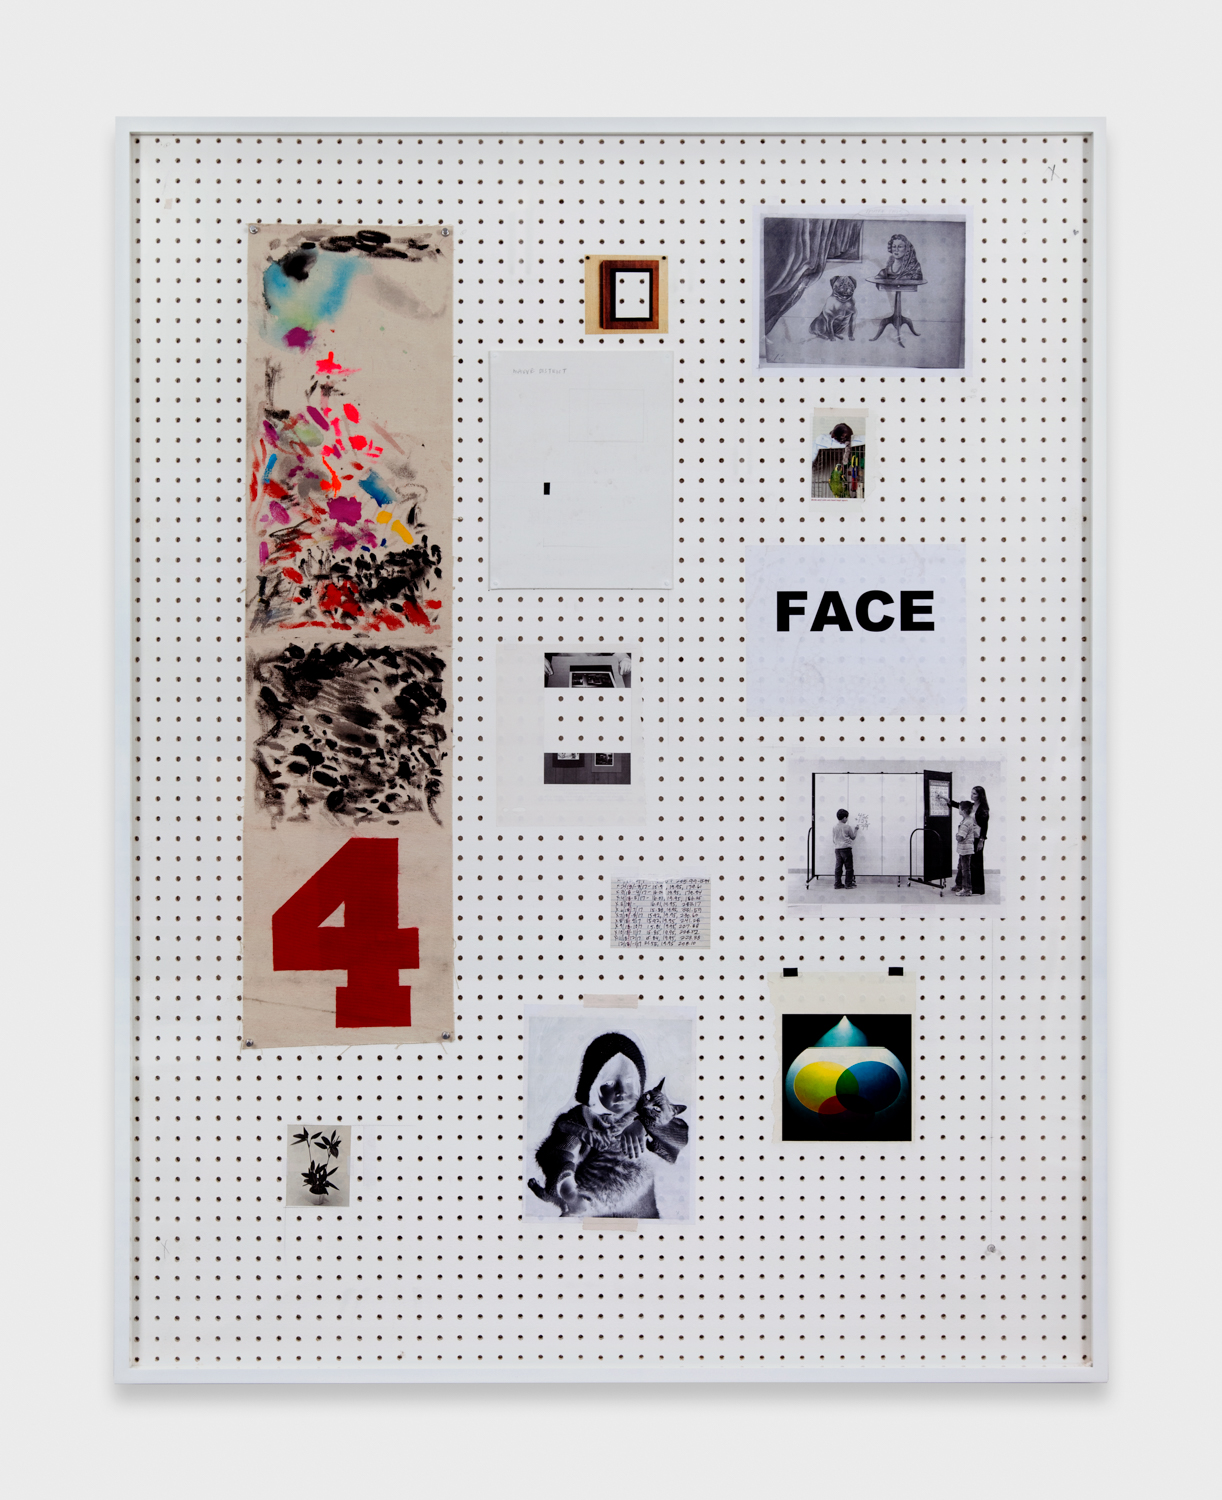 Amanda Ross-Ho  Untitled Still Life (FACE/MAUVE DISTRICT)  2011 Hand-drilled sheetrock, latex paint, graphite, linen tape, apron #1 palette (acrylic on canvas), aluminum thumbtacks, iron-on test for Leo's 40th, found images 62h x 48w in ARH009